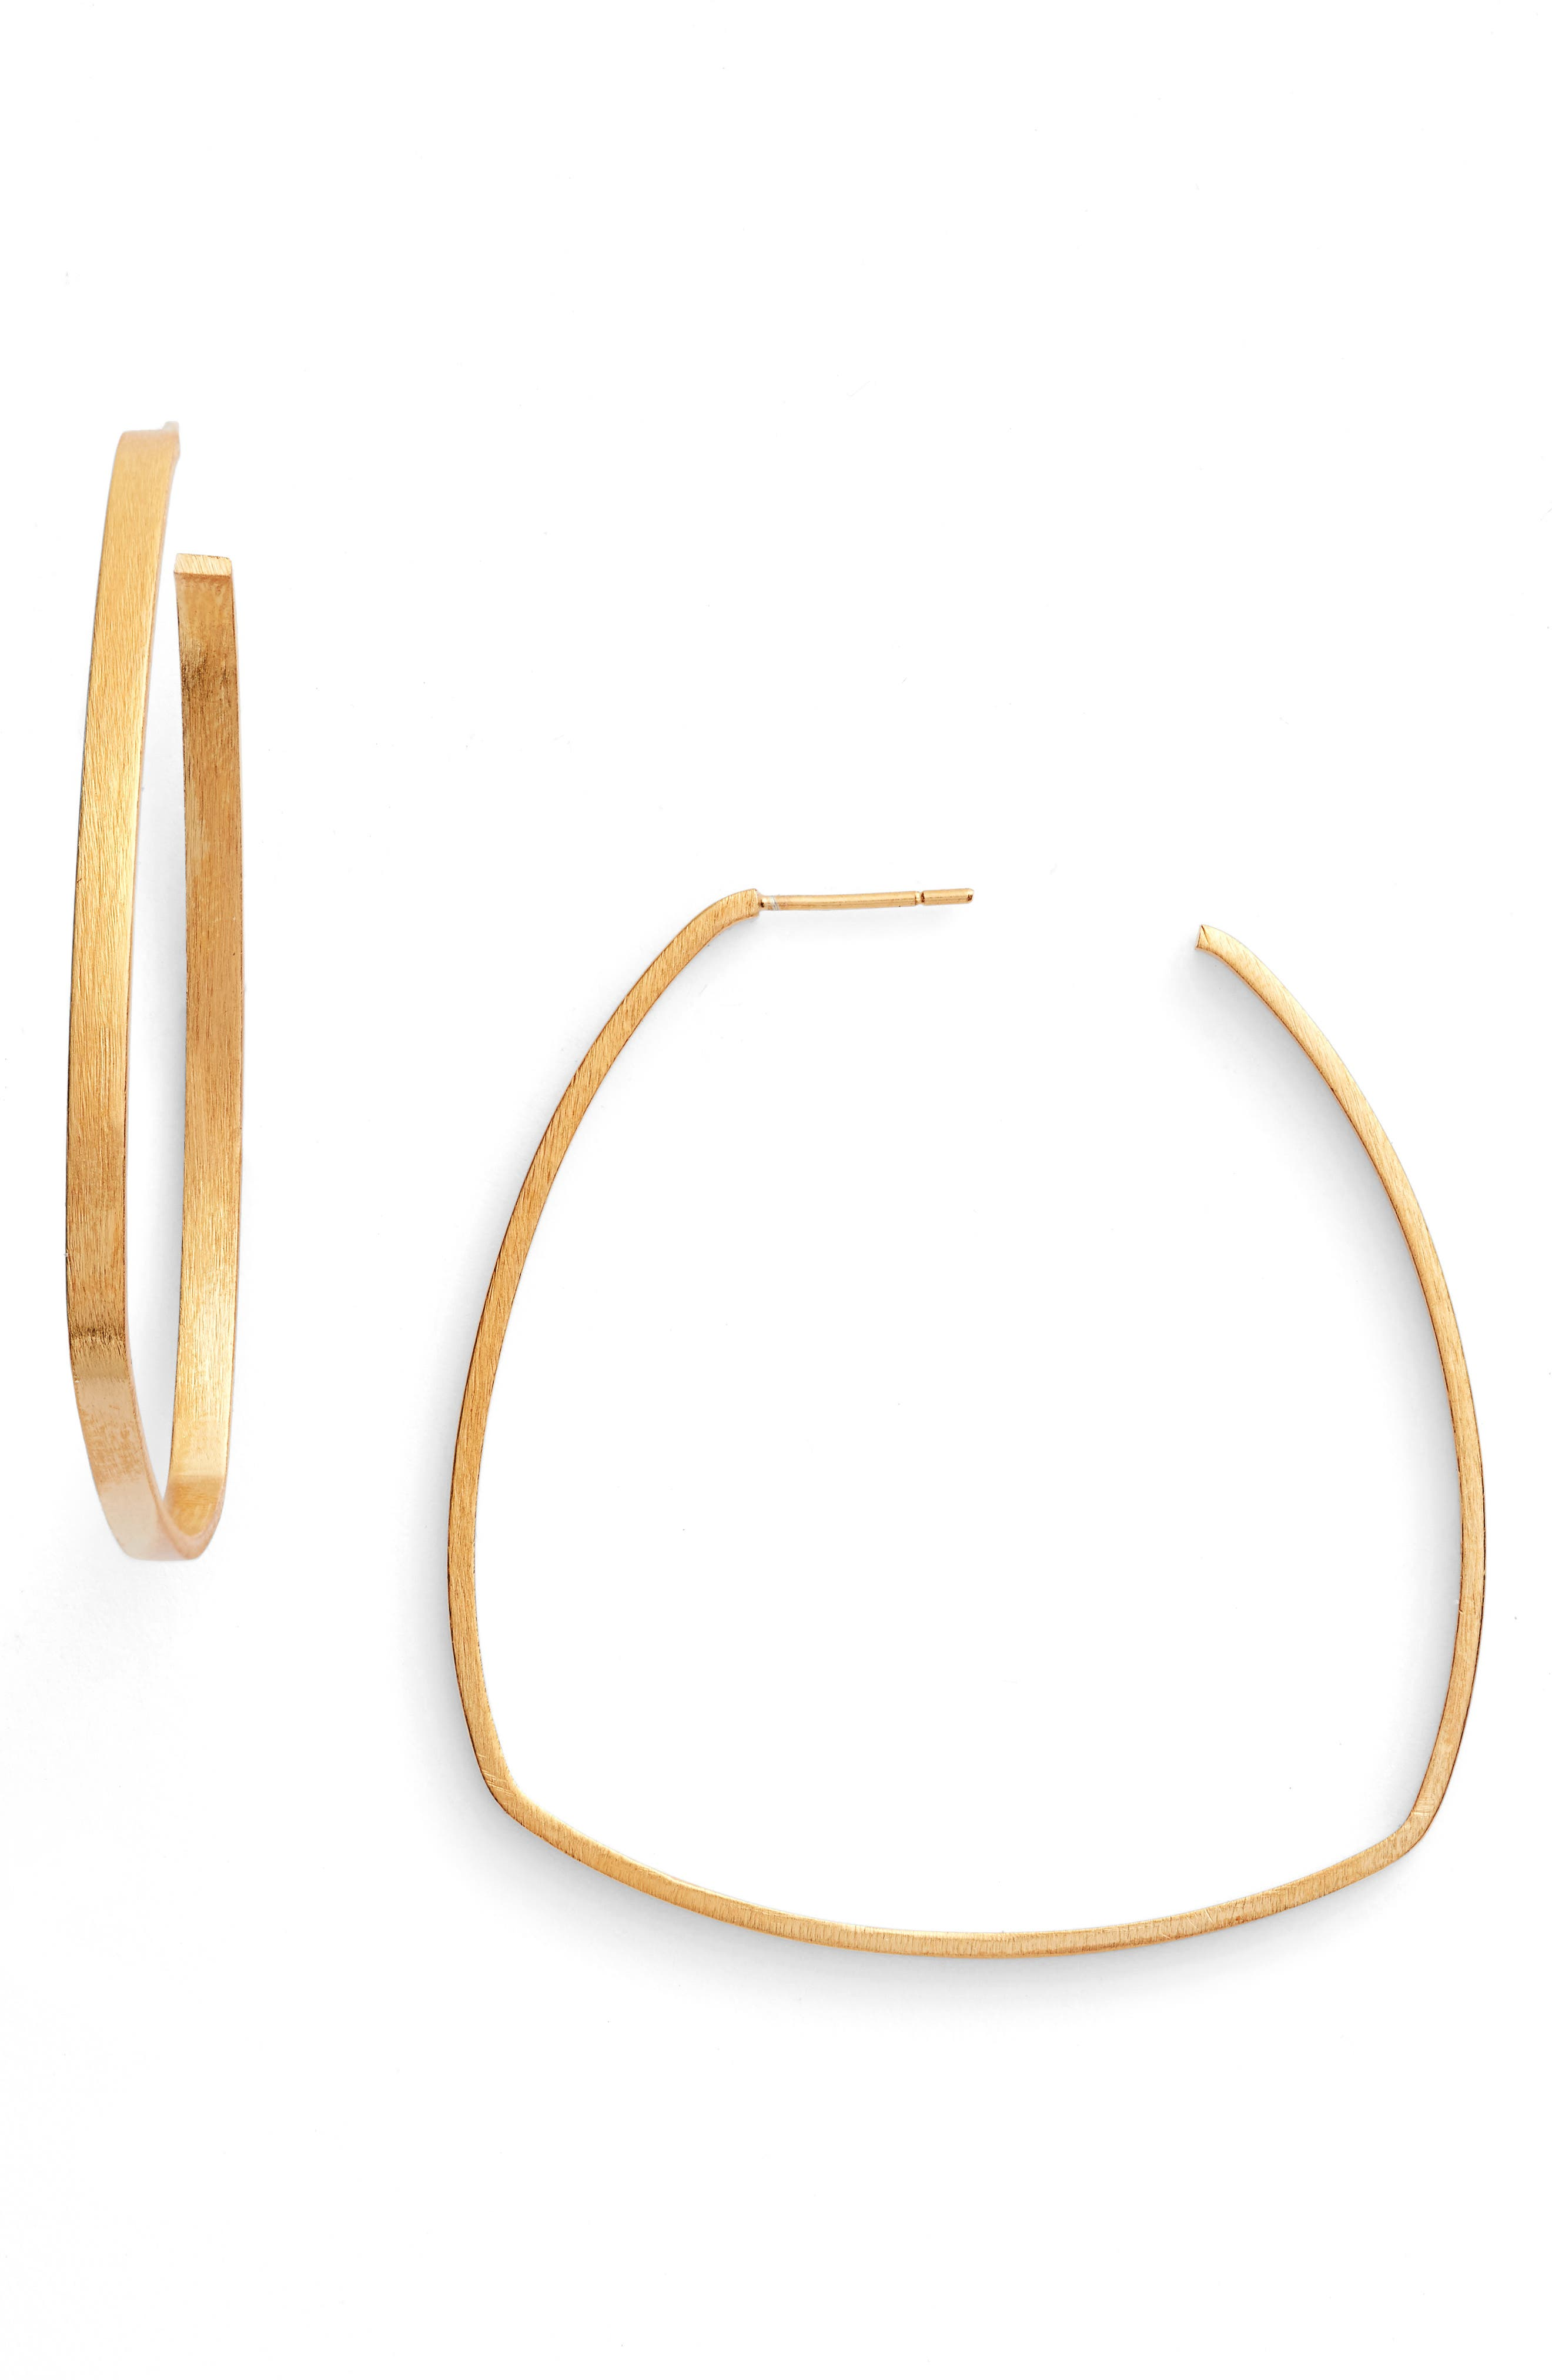 Square Hoop Earrings,                         Main,                         color, GOLD